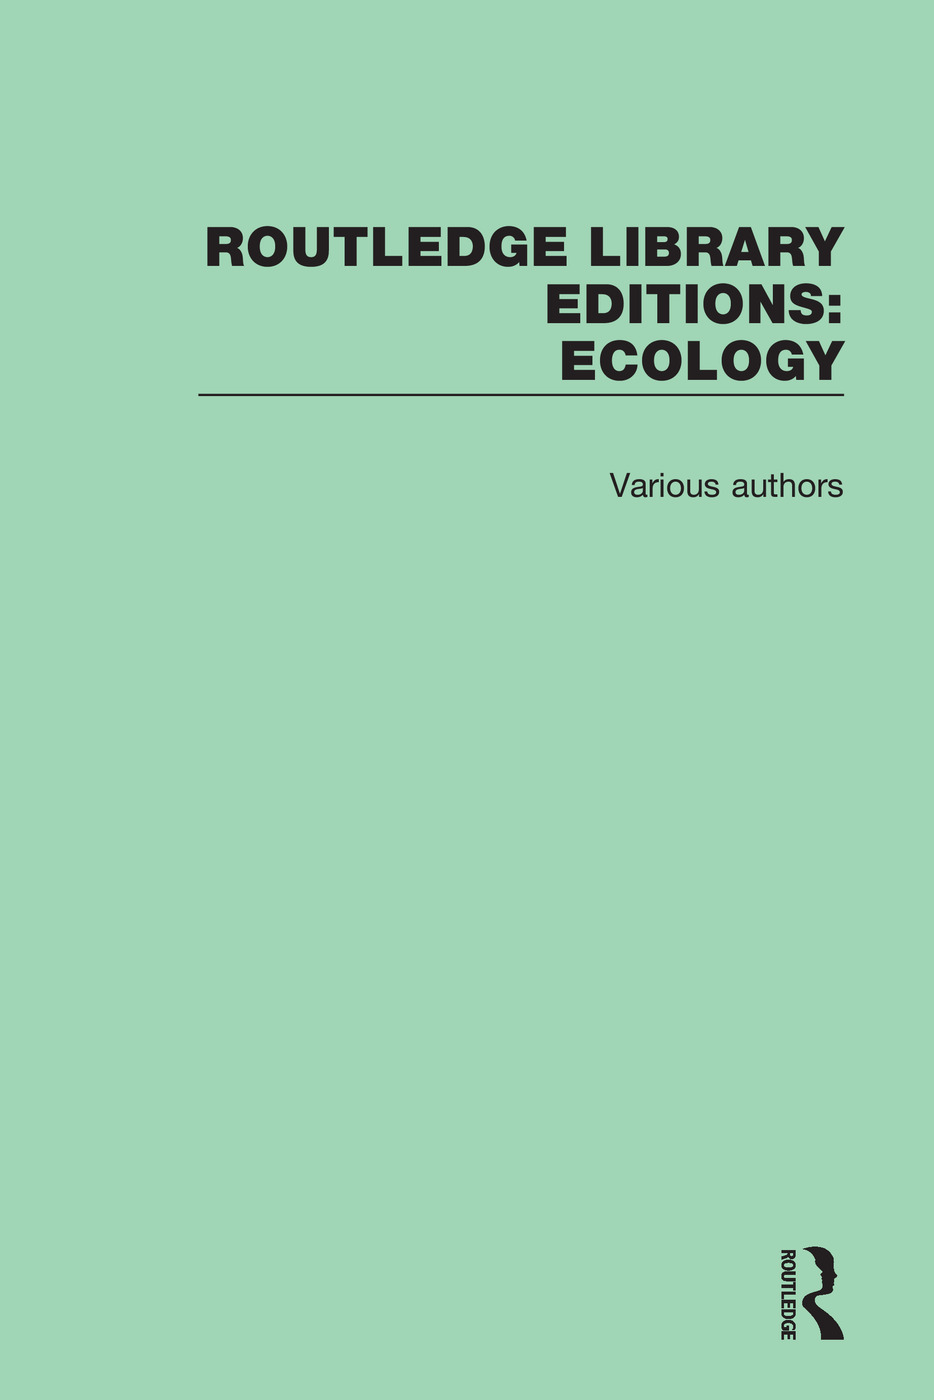 Routledge Library Editions: Ecology book cover